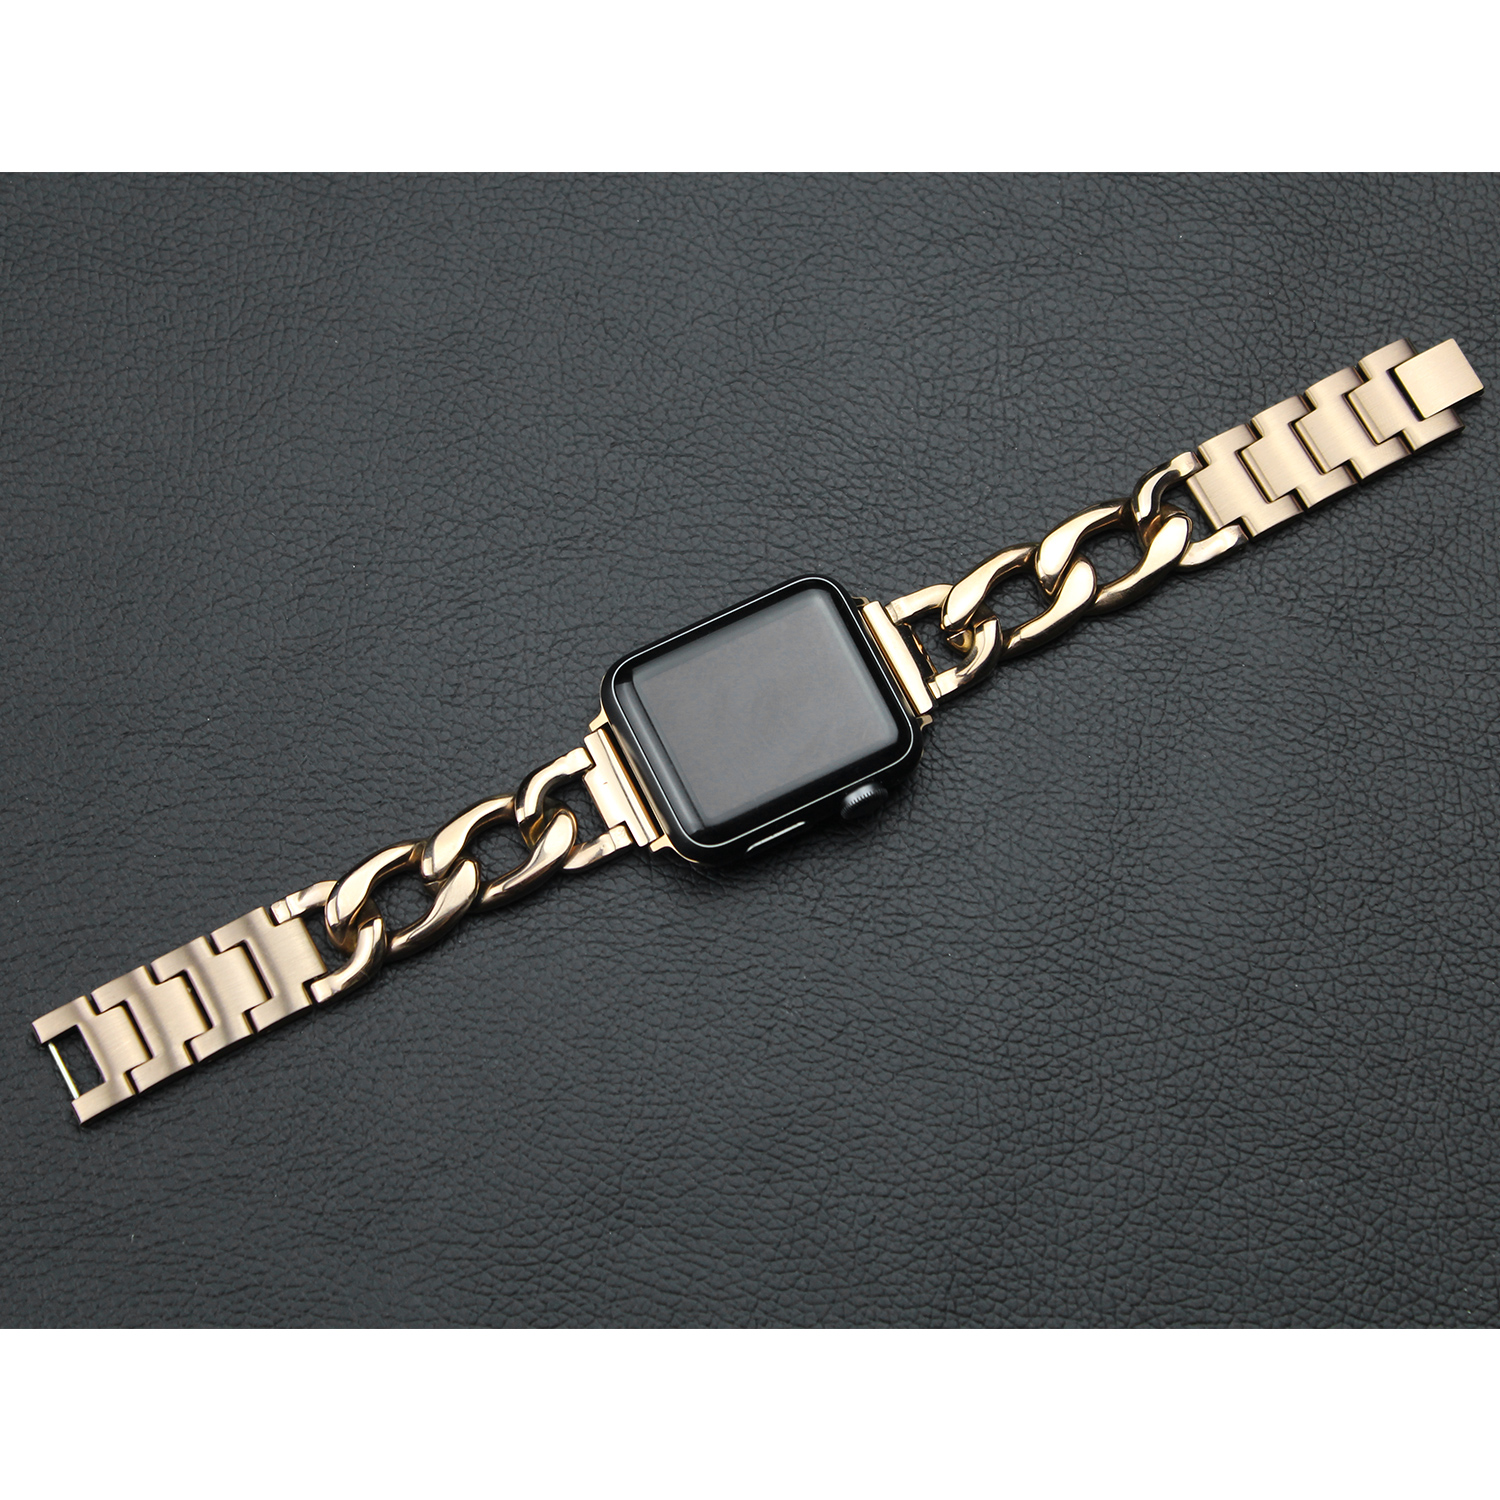 Metal581063 strap For Apple Watch Band 38mm 42mm Stainless Steel Metal Cowboy Chain Band for Apple Watch